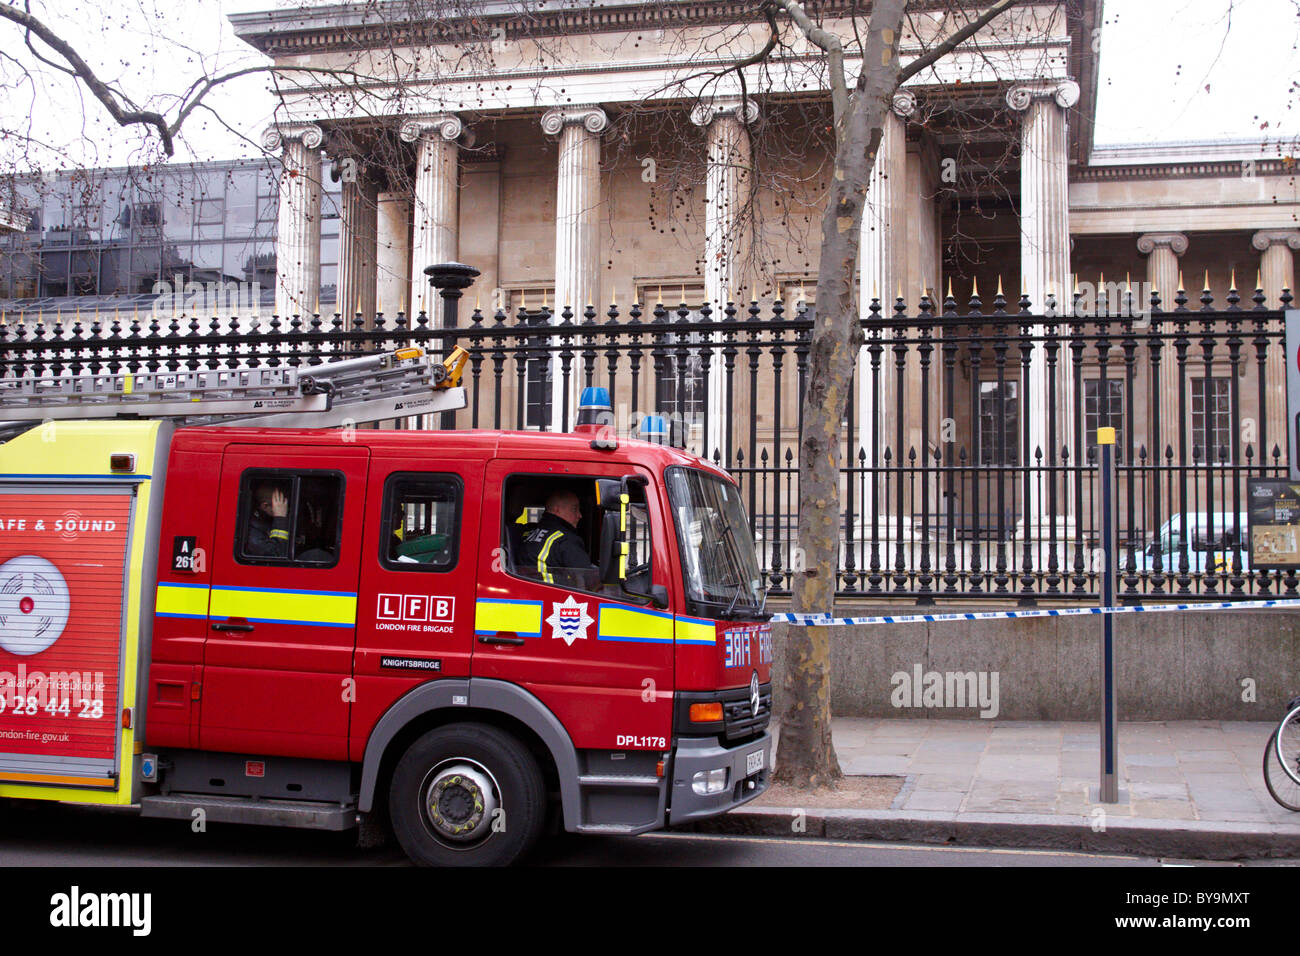 LONDON, UK. The British Museum evacuated due to a chemical alert - Stock Image